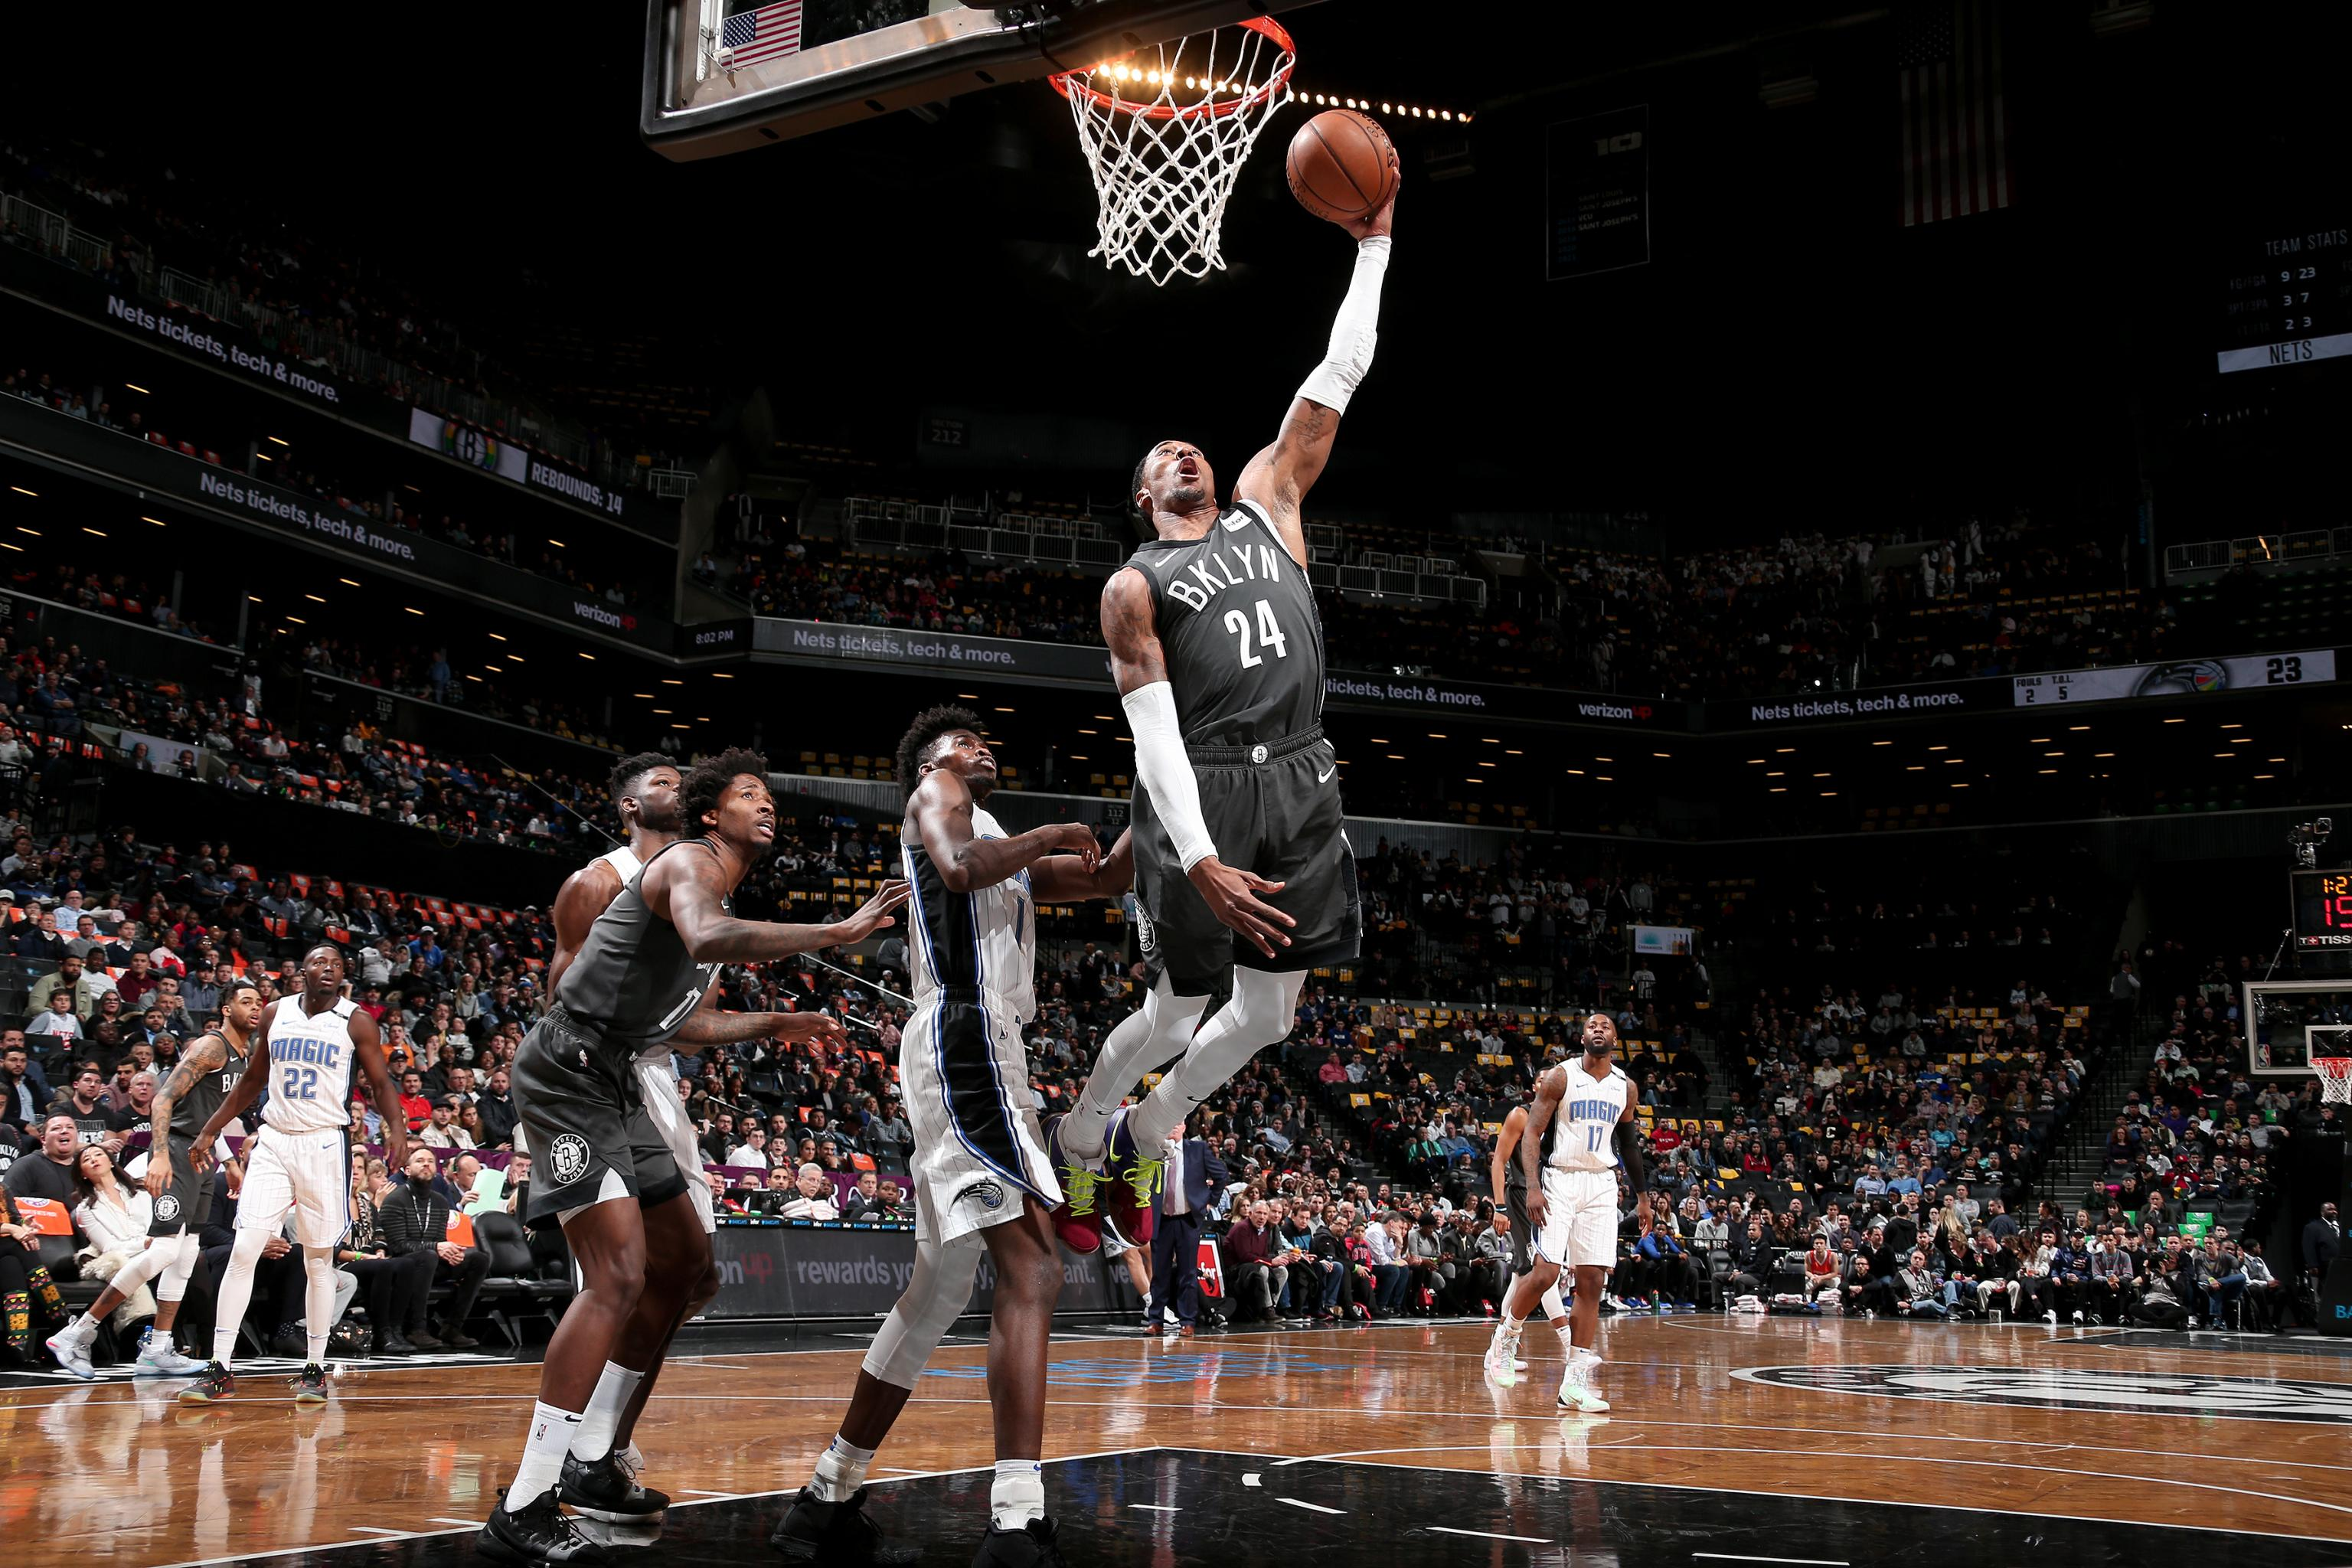 Nets Sf Rondae Hollis Jefferson Ruled Out Vs Magic With Shoulder Injury Bleacher Report Latest News Videos And Highlights